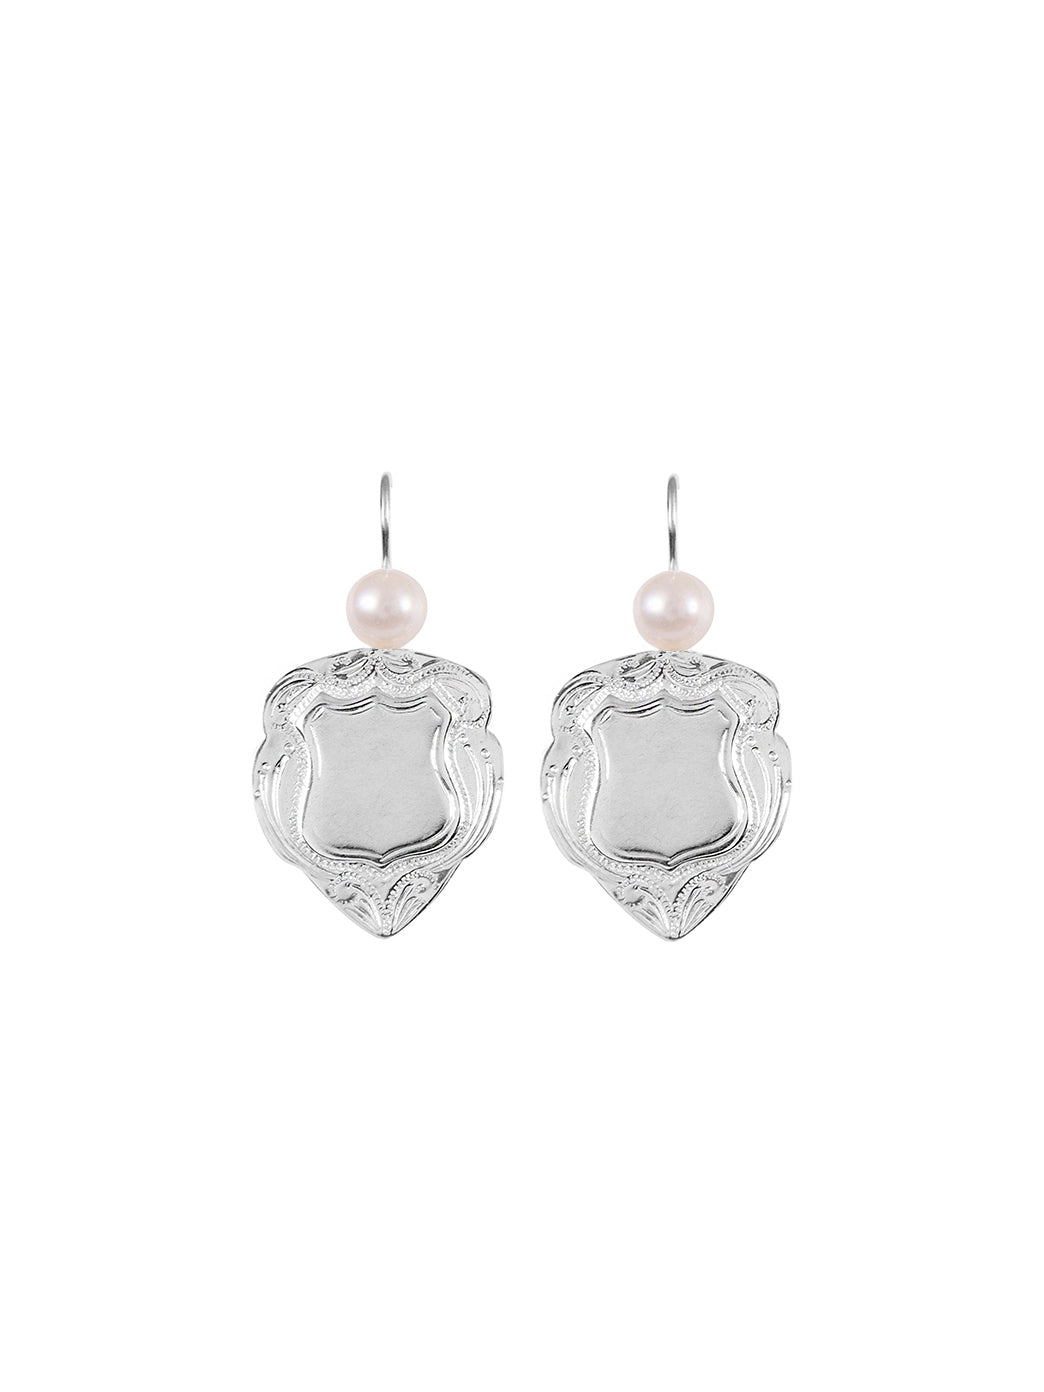 Fiorina Jewellery Shield Earrings Large White Pearl Highlights